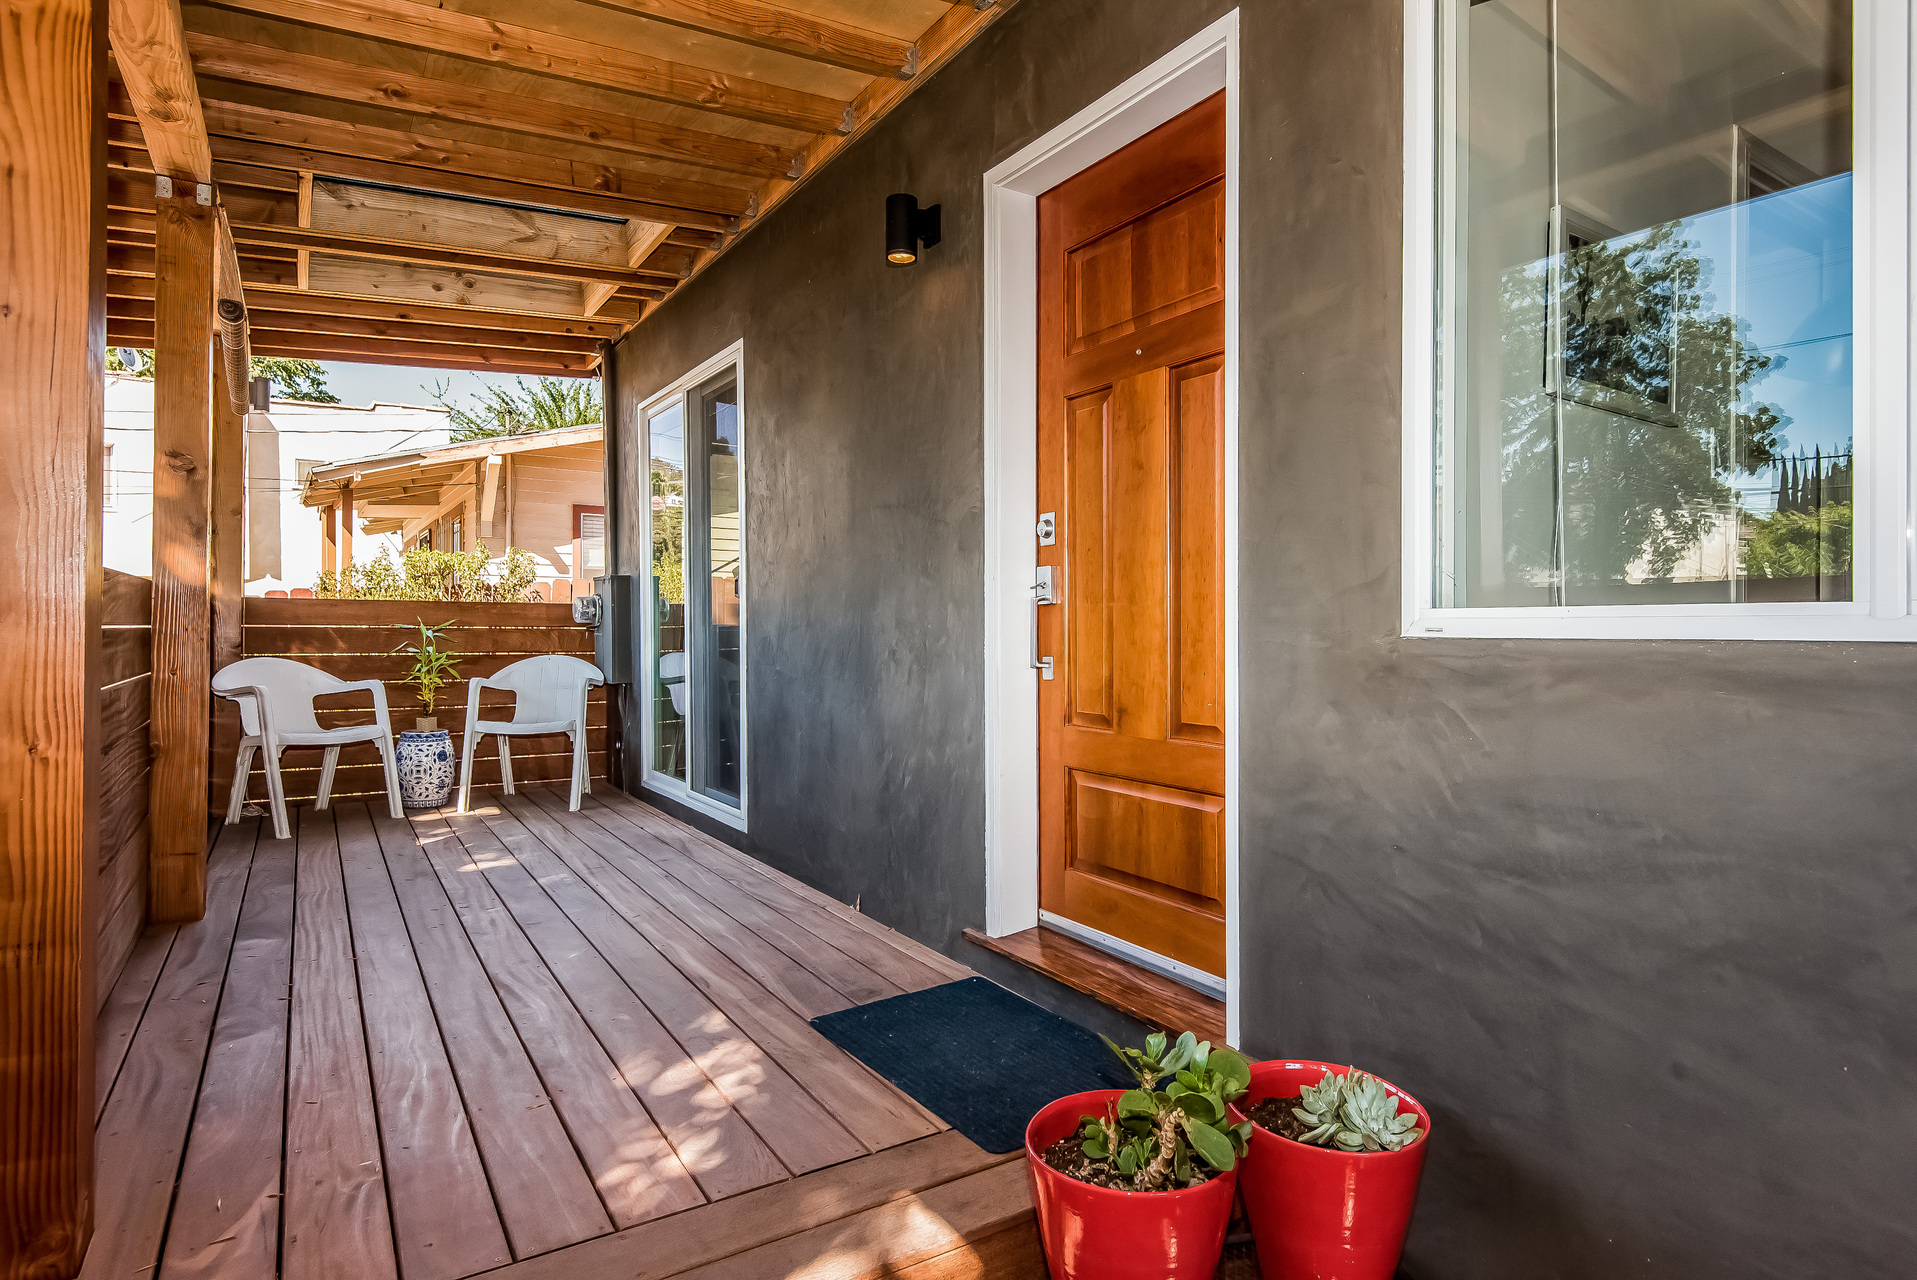 007-Covered_Porch-3114589-medium.jpg